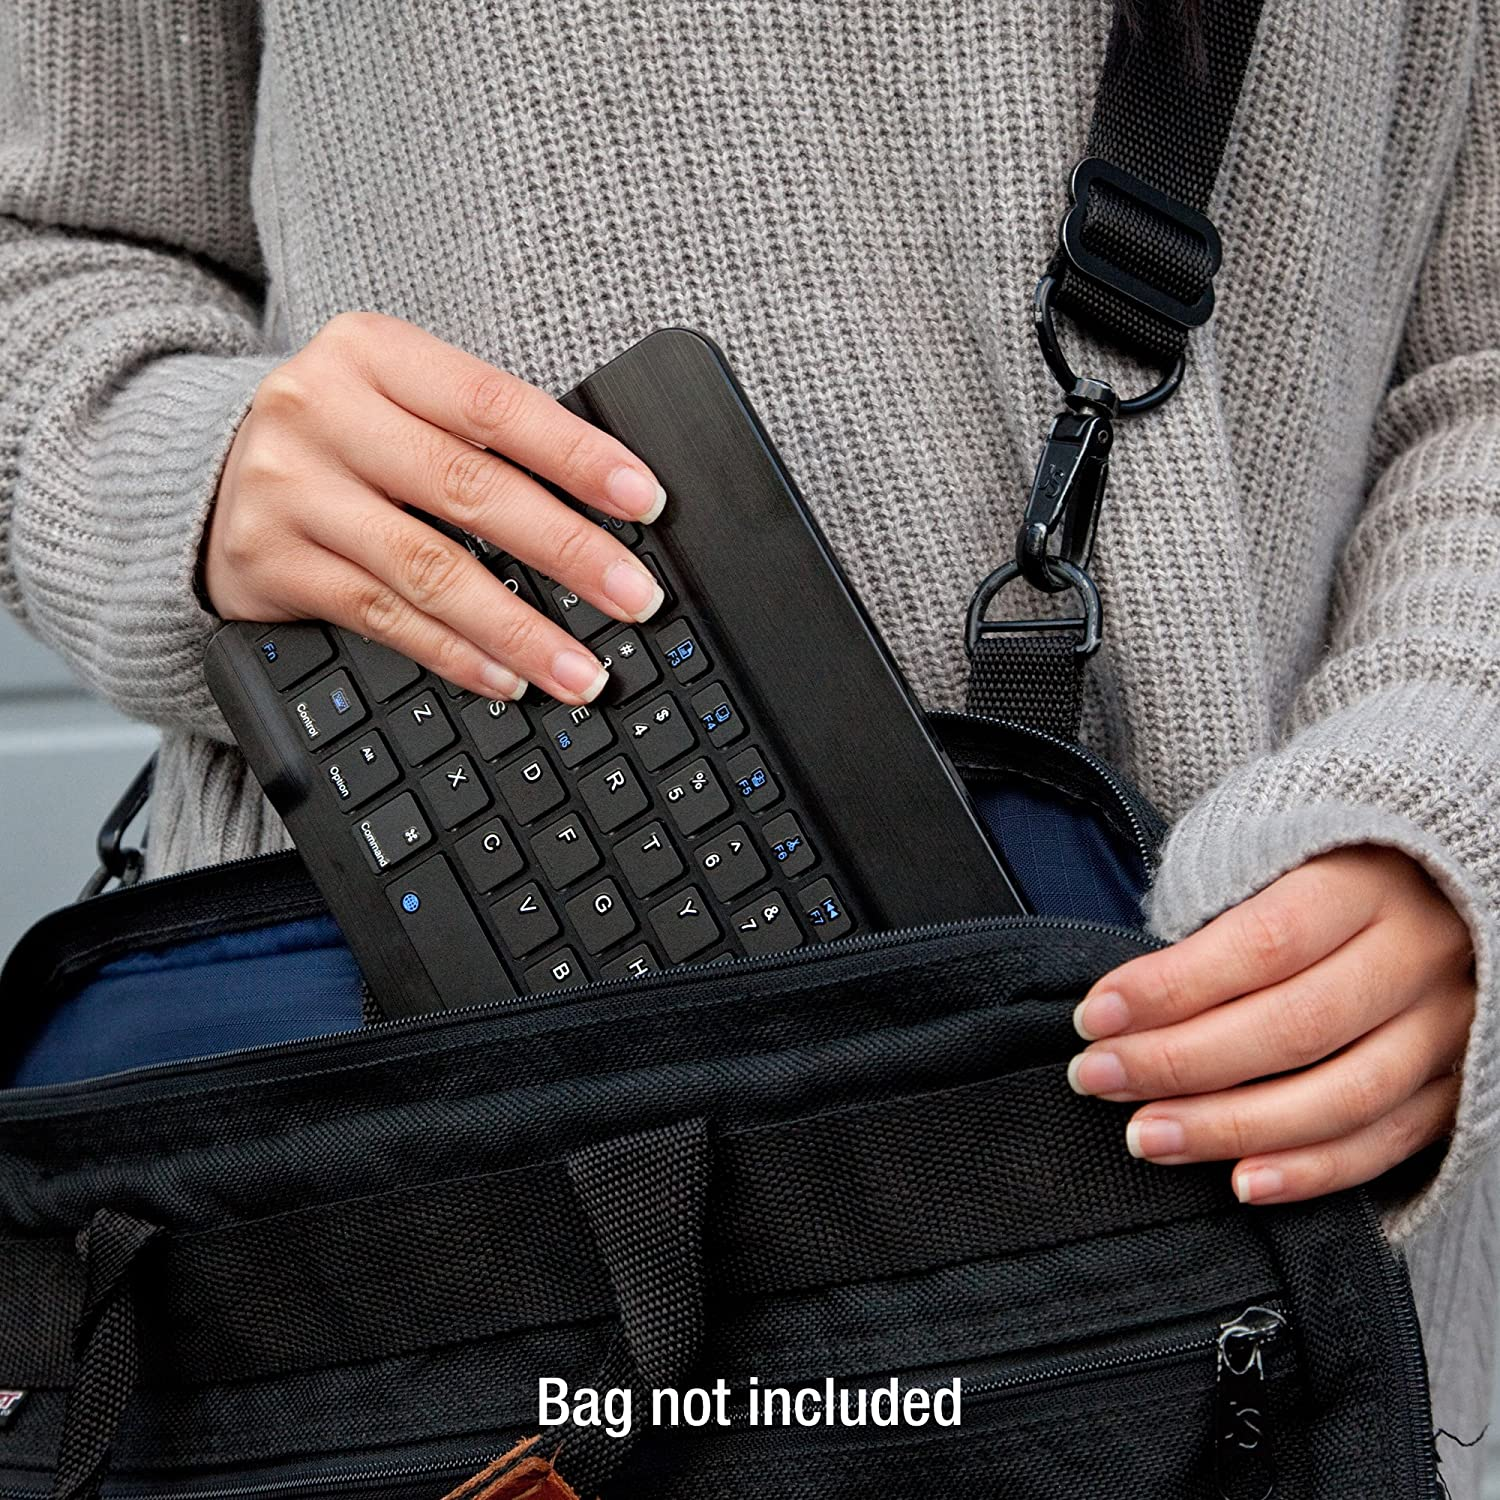 Keyboard 10.1 in Portable Keyboard with Integrated Commands for Azpen A1040 10.1 in SlimKeys Bluetooth Keyboard - Jet Black BoxWave Azpen A1040